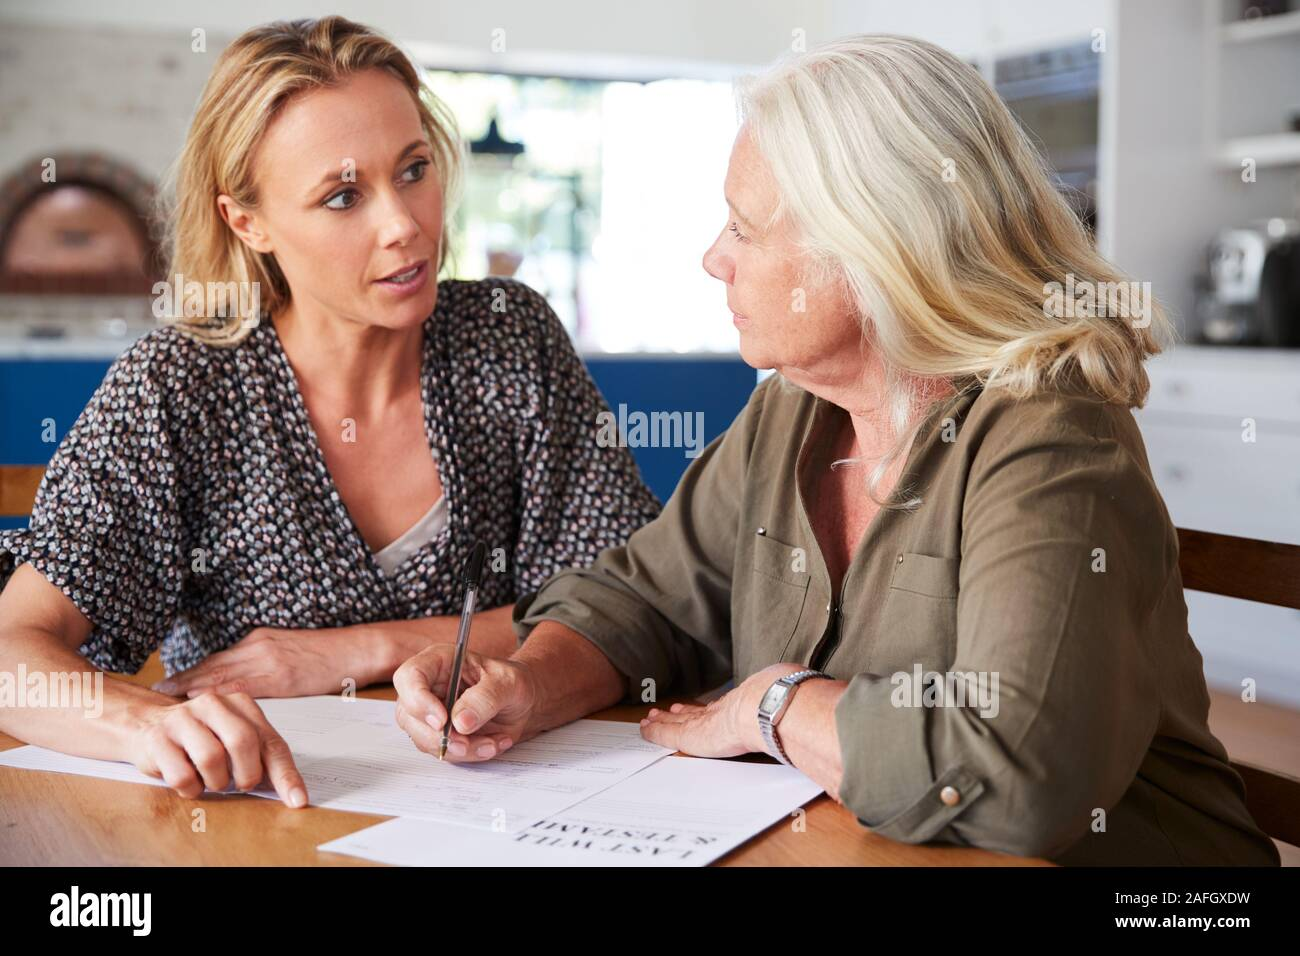 Female Friend Helping Senior Woman To Complete Last Will And Testament At Home Stock Photo